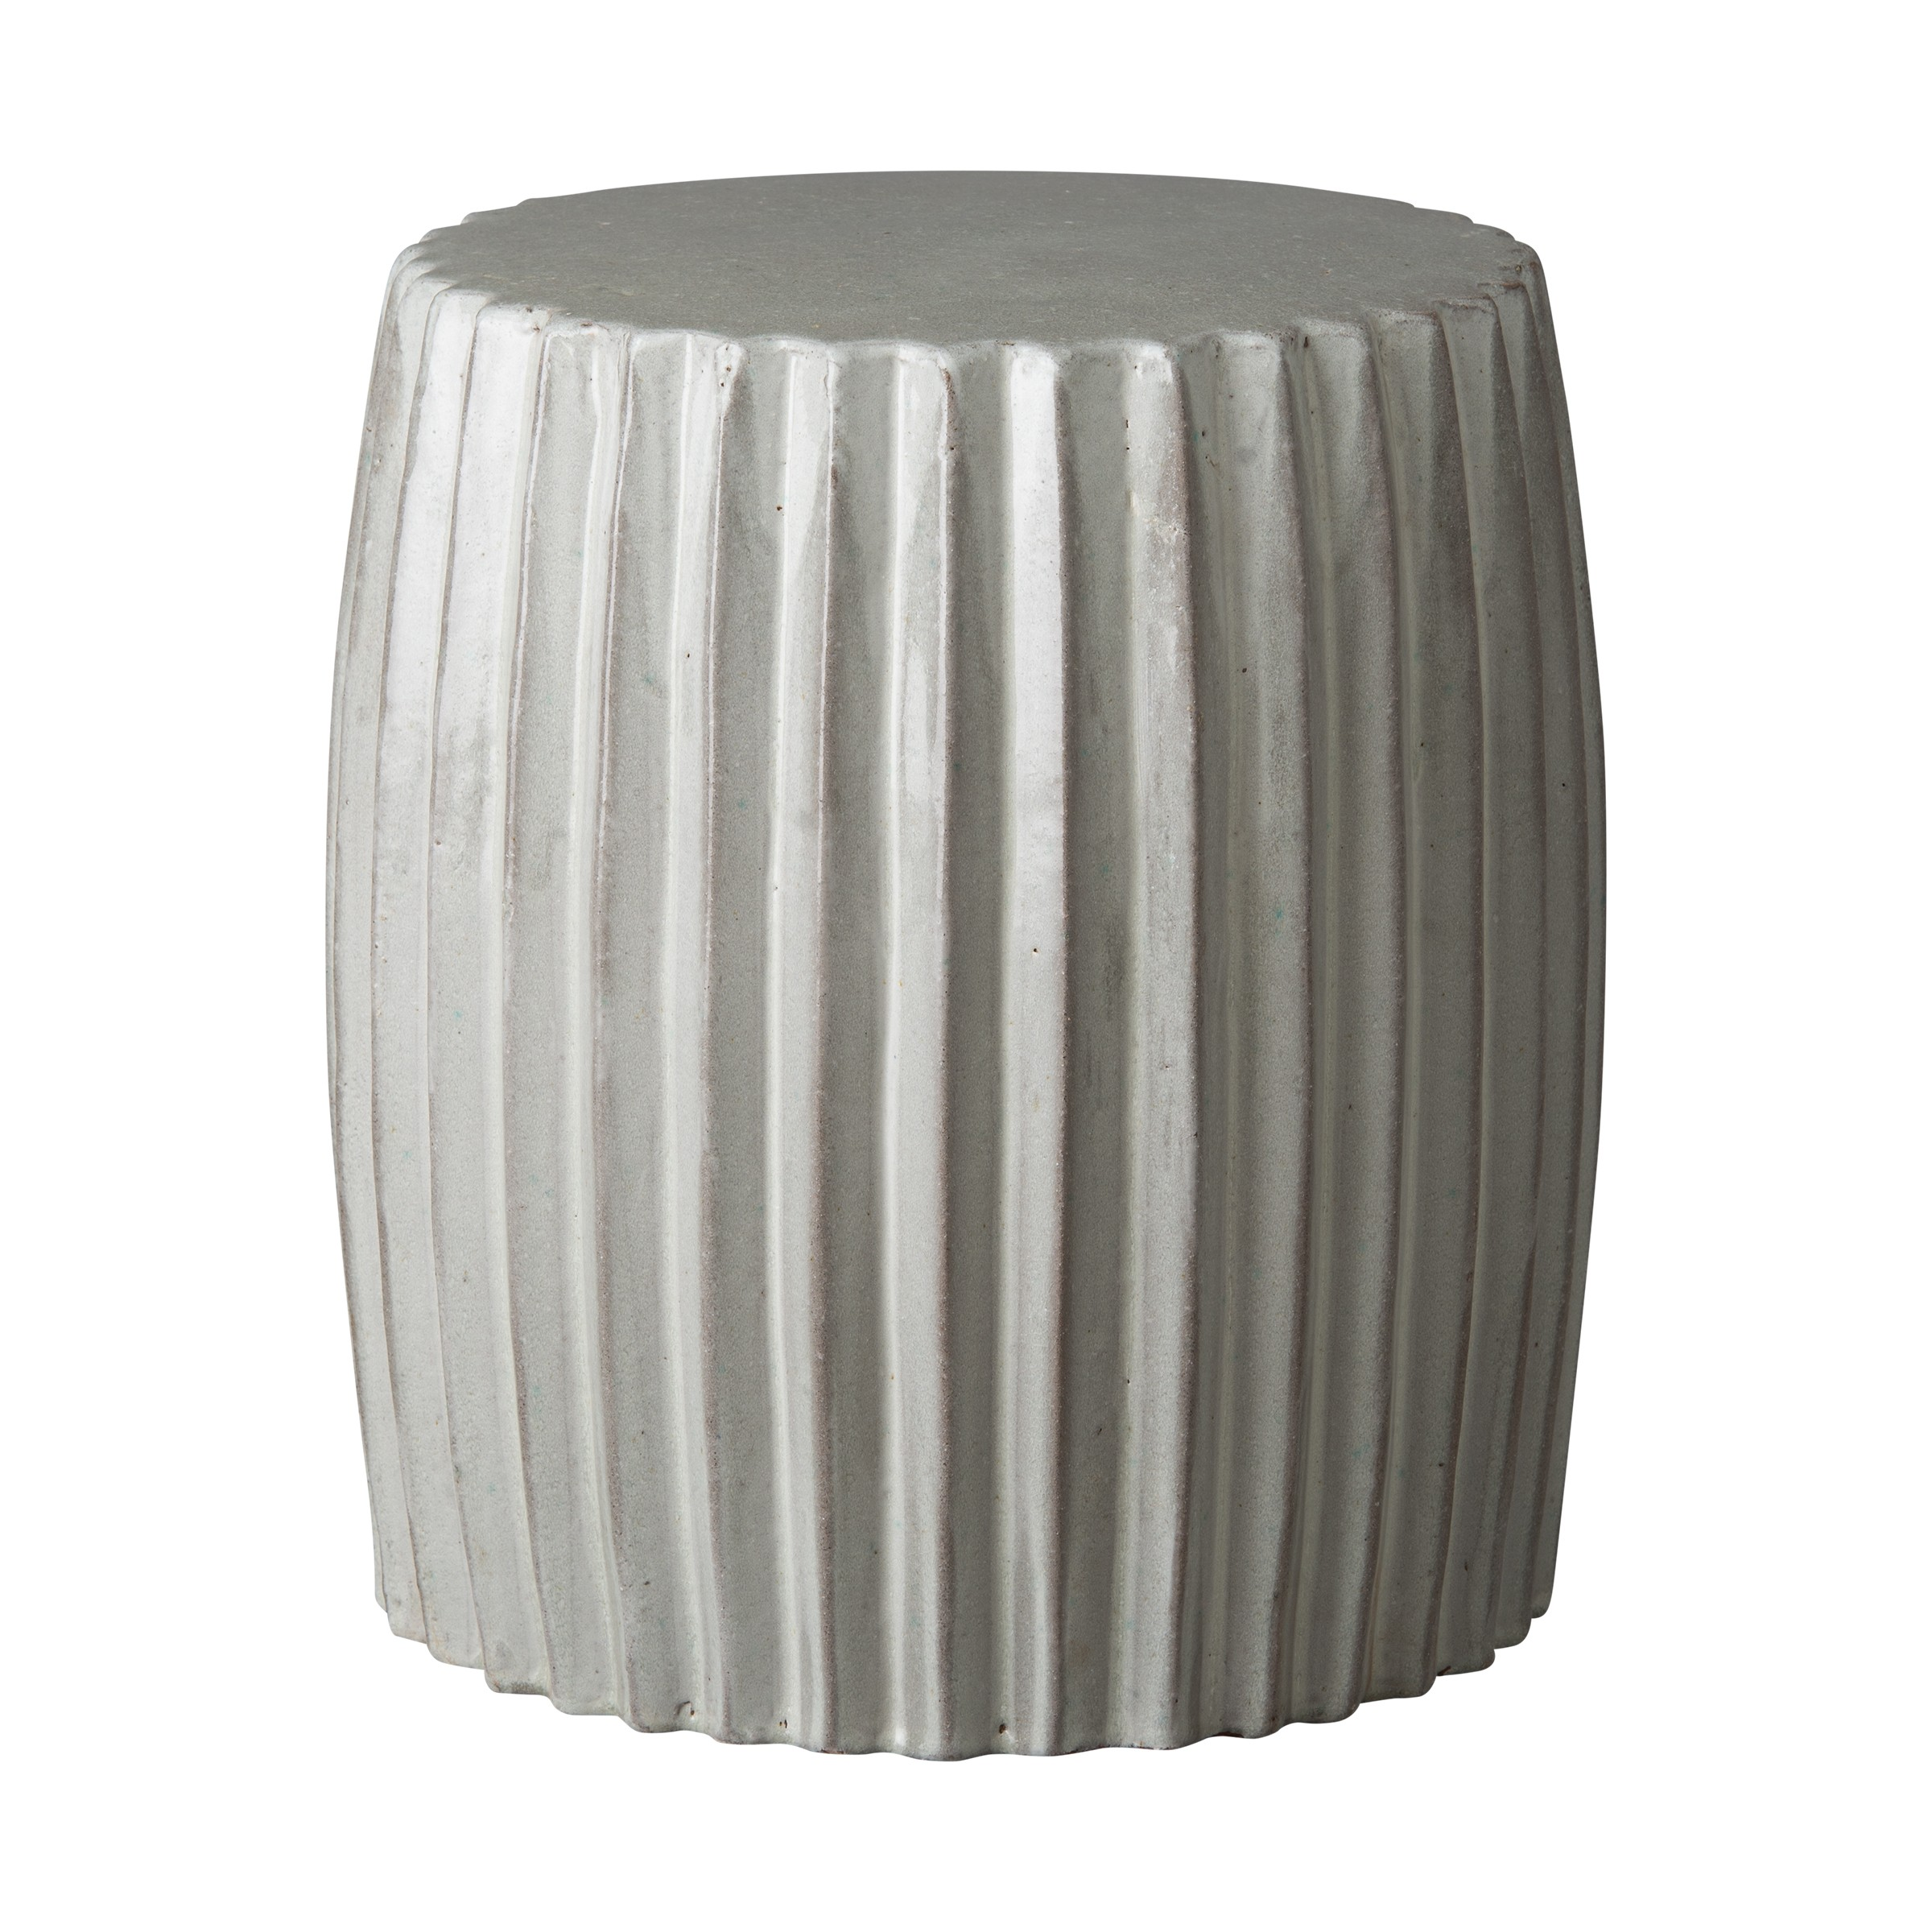 Pleated Garden Stool Table